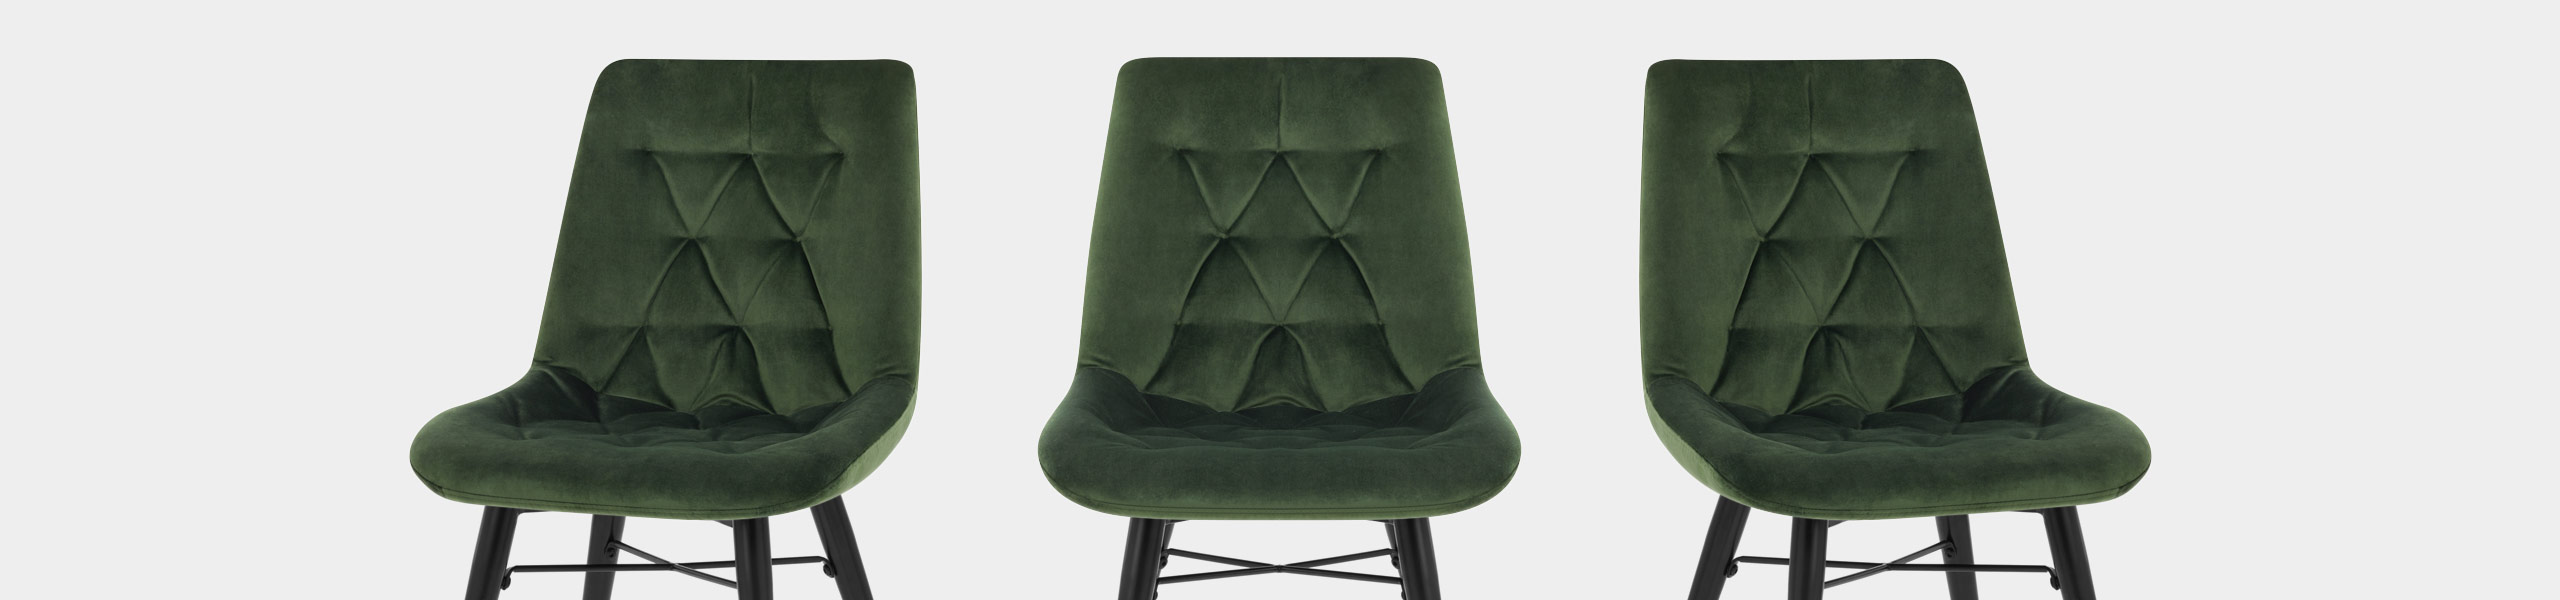 Roxy Dining Chair Green Velvet Video Banner